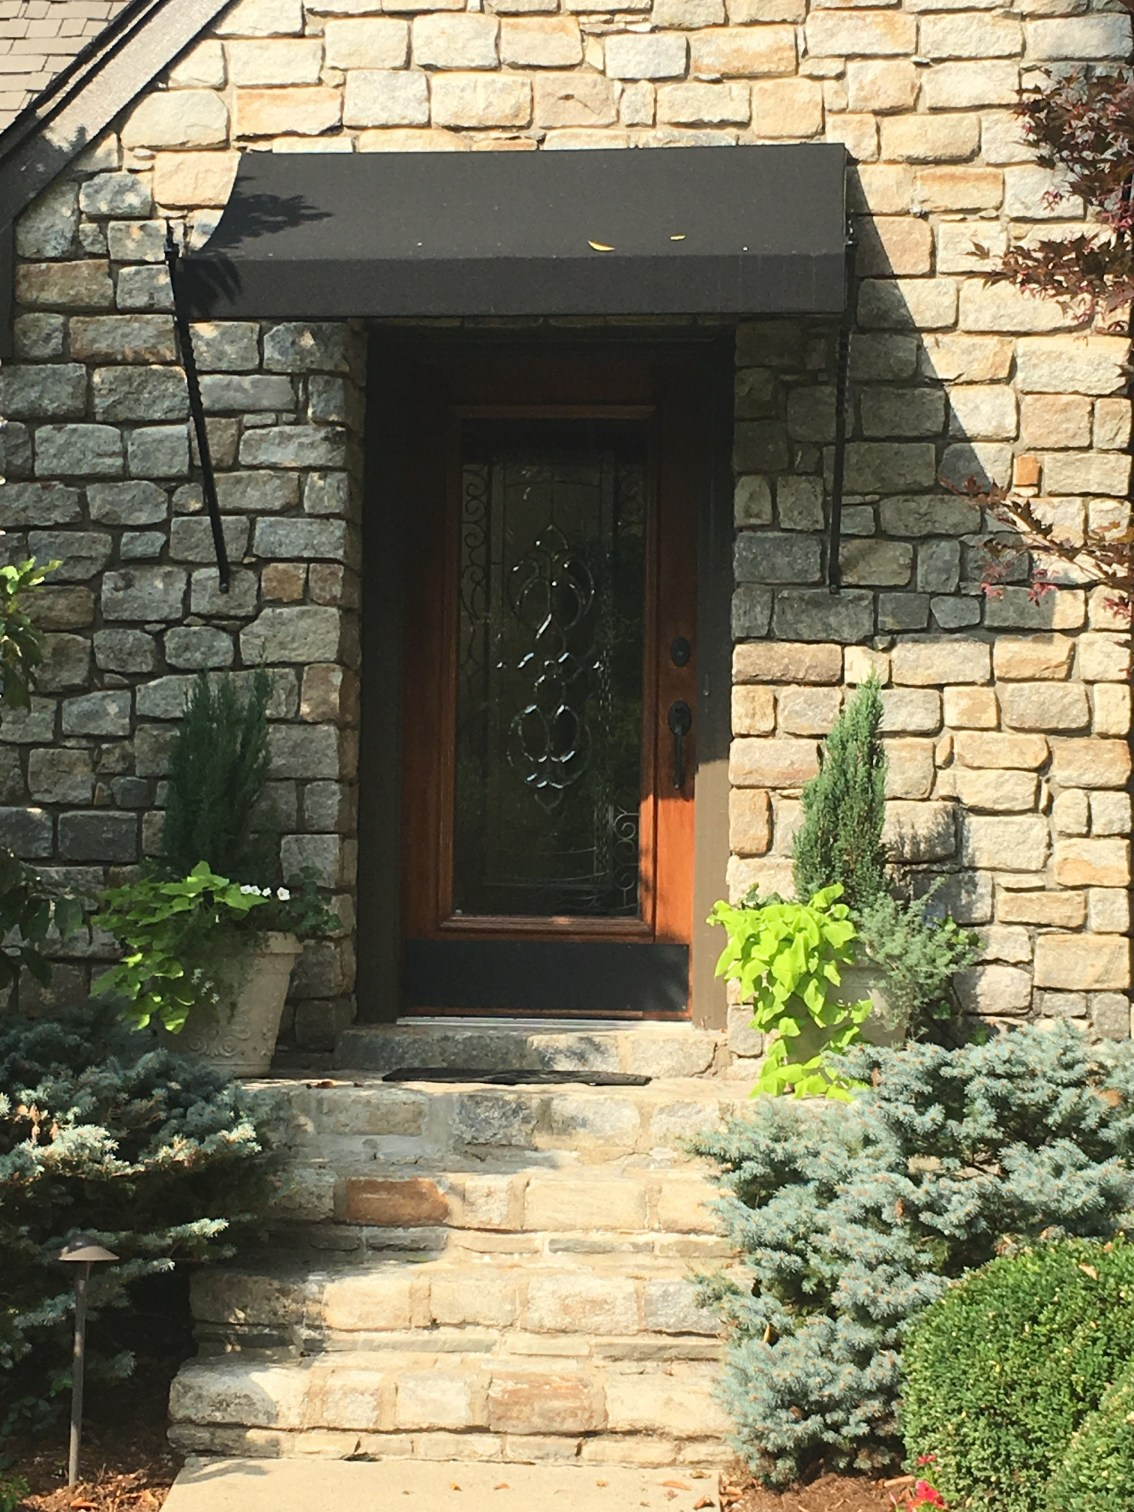 Stone Steps, Wood Decorative Glass Entry Door, Black Canvas Awning